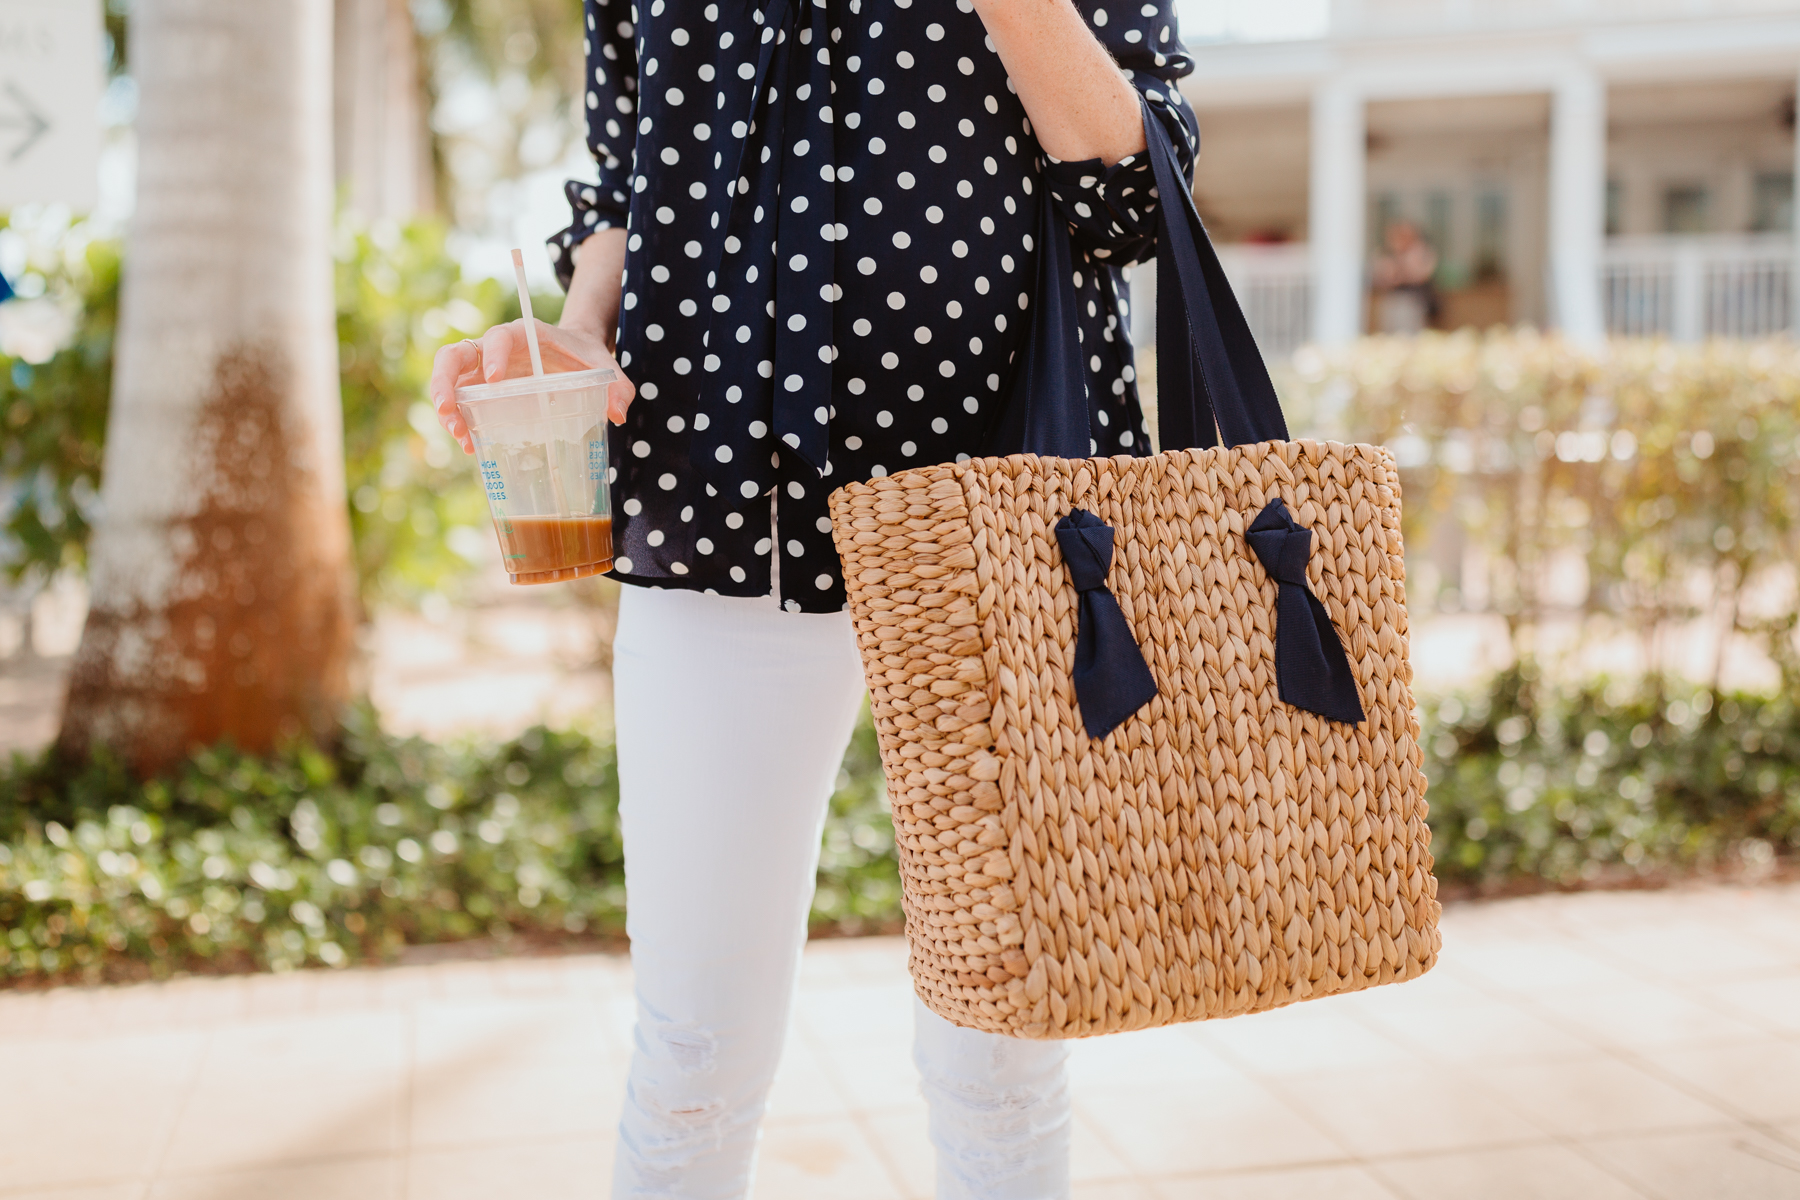 Kelly's Outfit: J.Crew Navy Polka Dot Top / Pamela Munson Woven Tote / J Brand Maternity Ankle Jeans